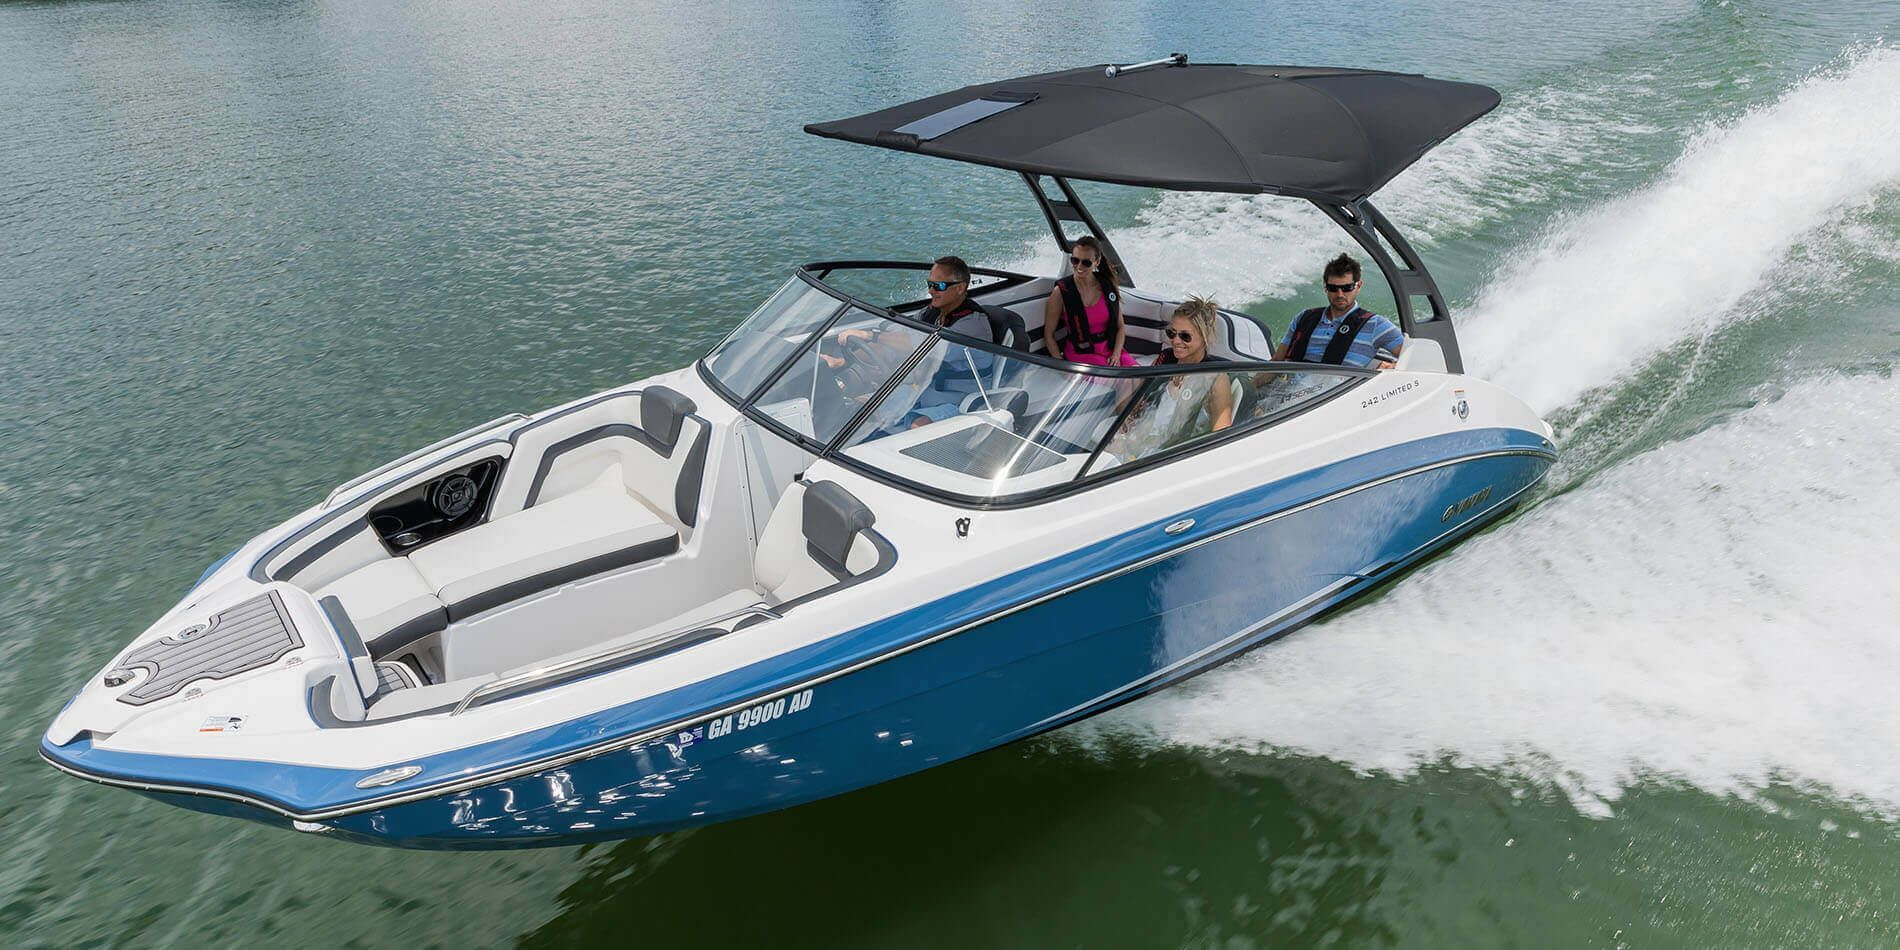 Review Yamaha Boats Yamaha Boats 2019 Yamaha Boats 210 Fsh Sport Yamaha Boats 275 Yamaha Boats Financing Yamaha Boats For Sale Boat Yamaha Boats Boats For Sale